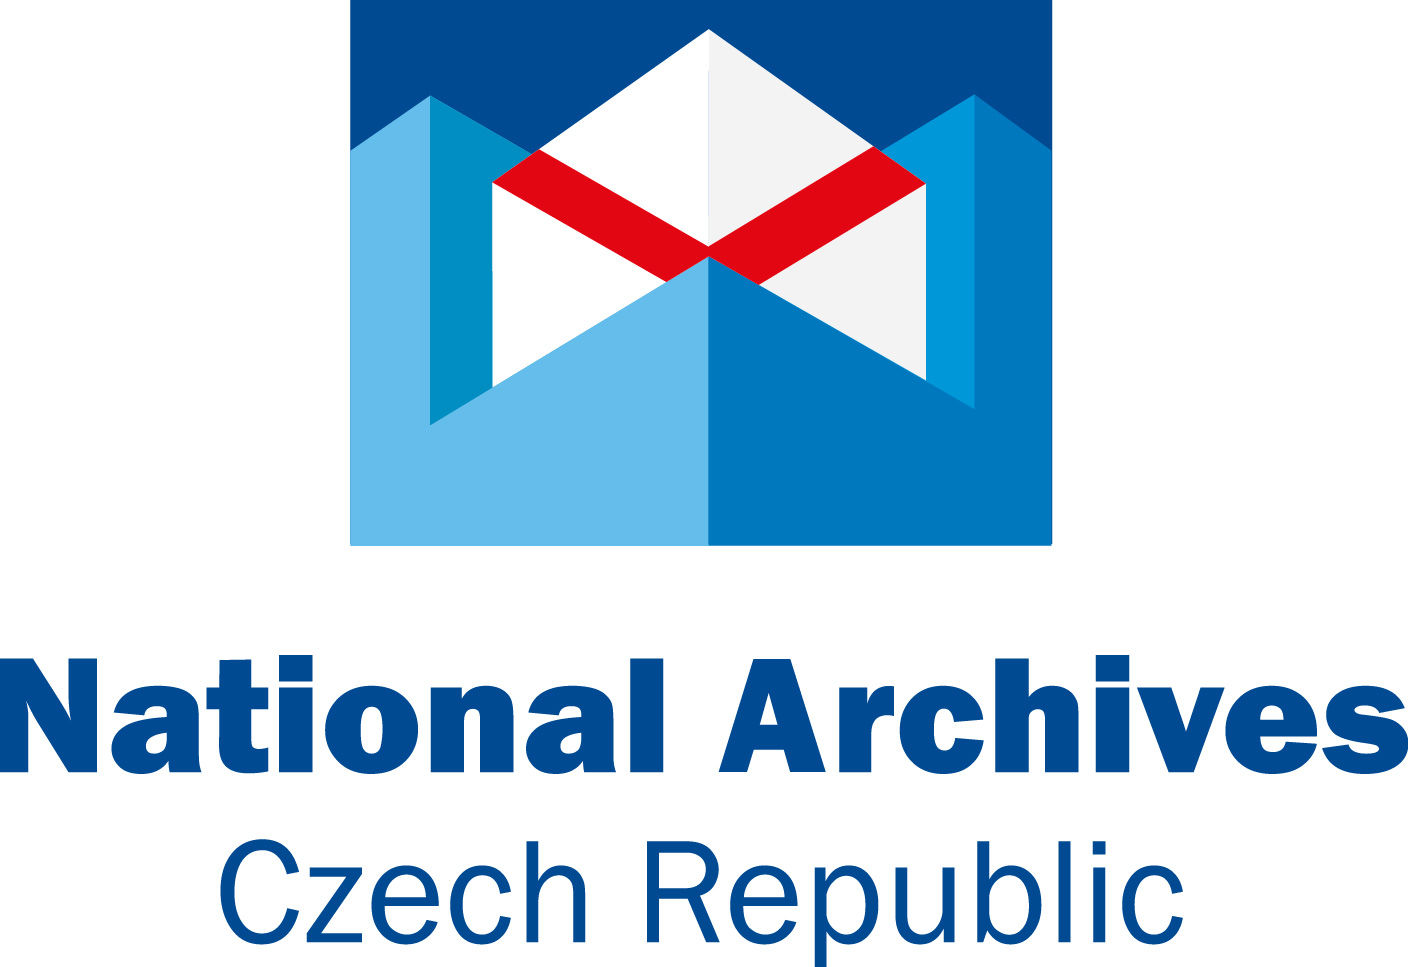 National Archives of Czech Republic